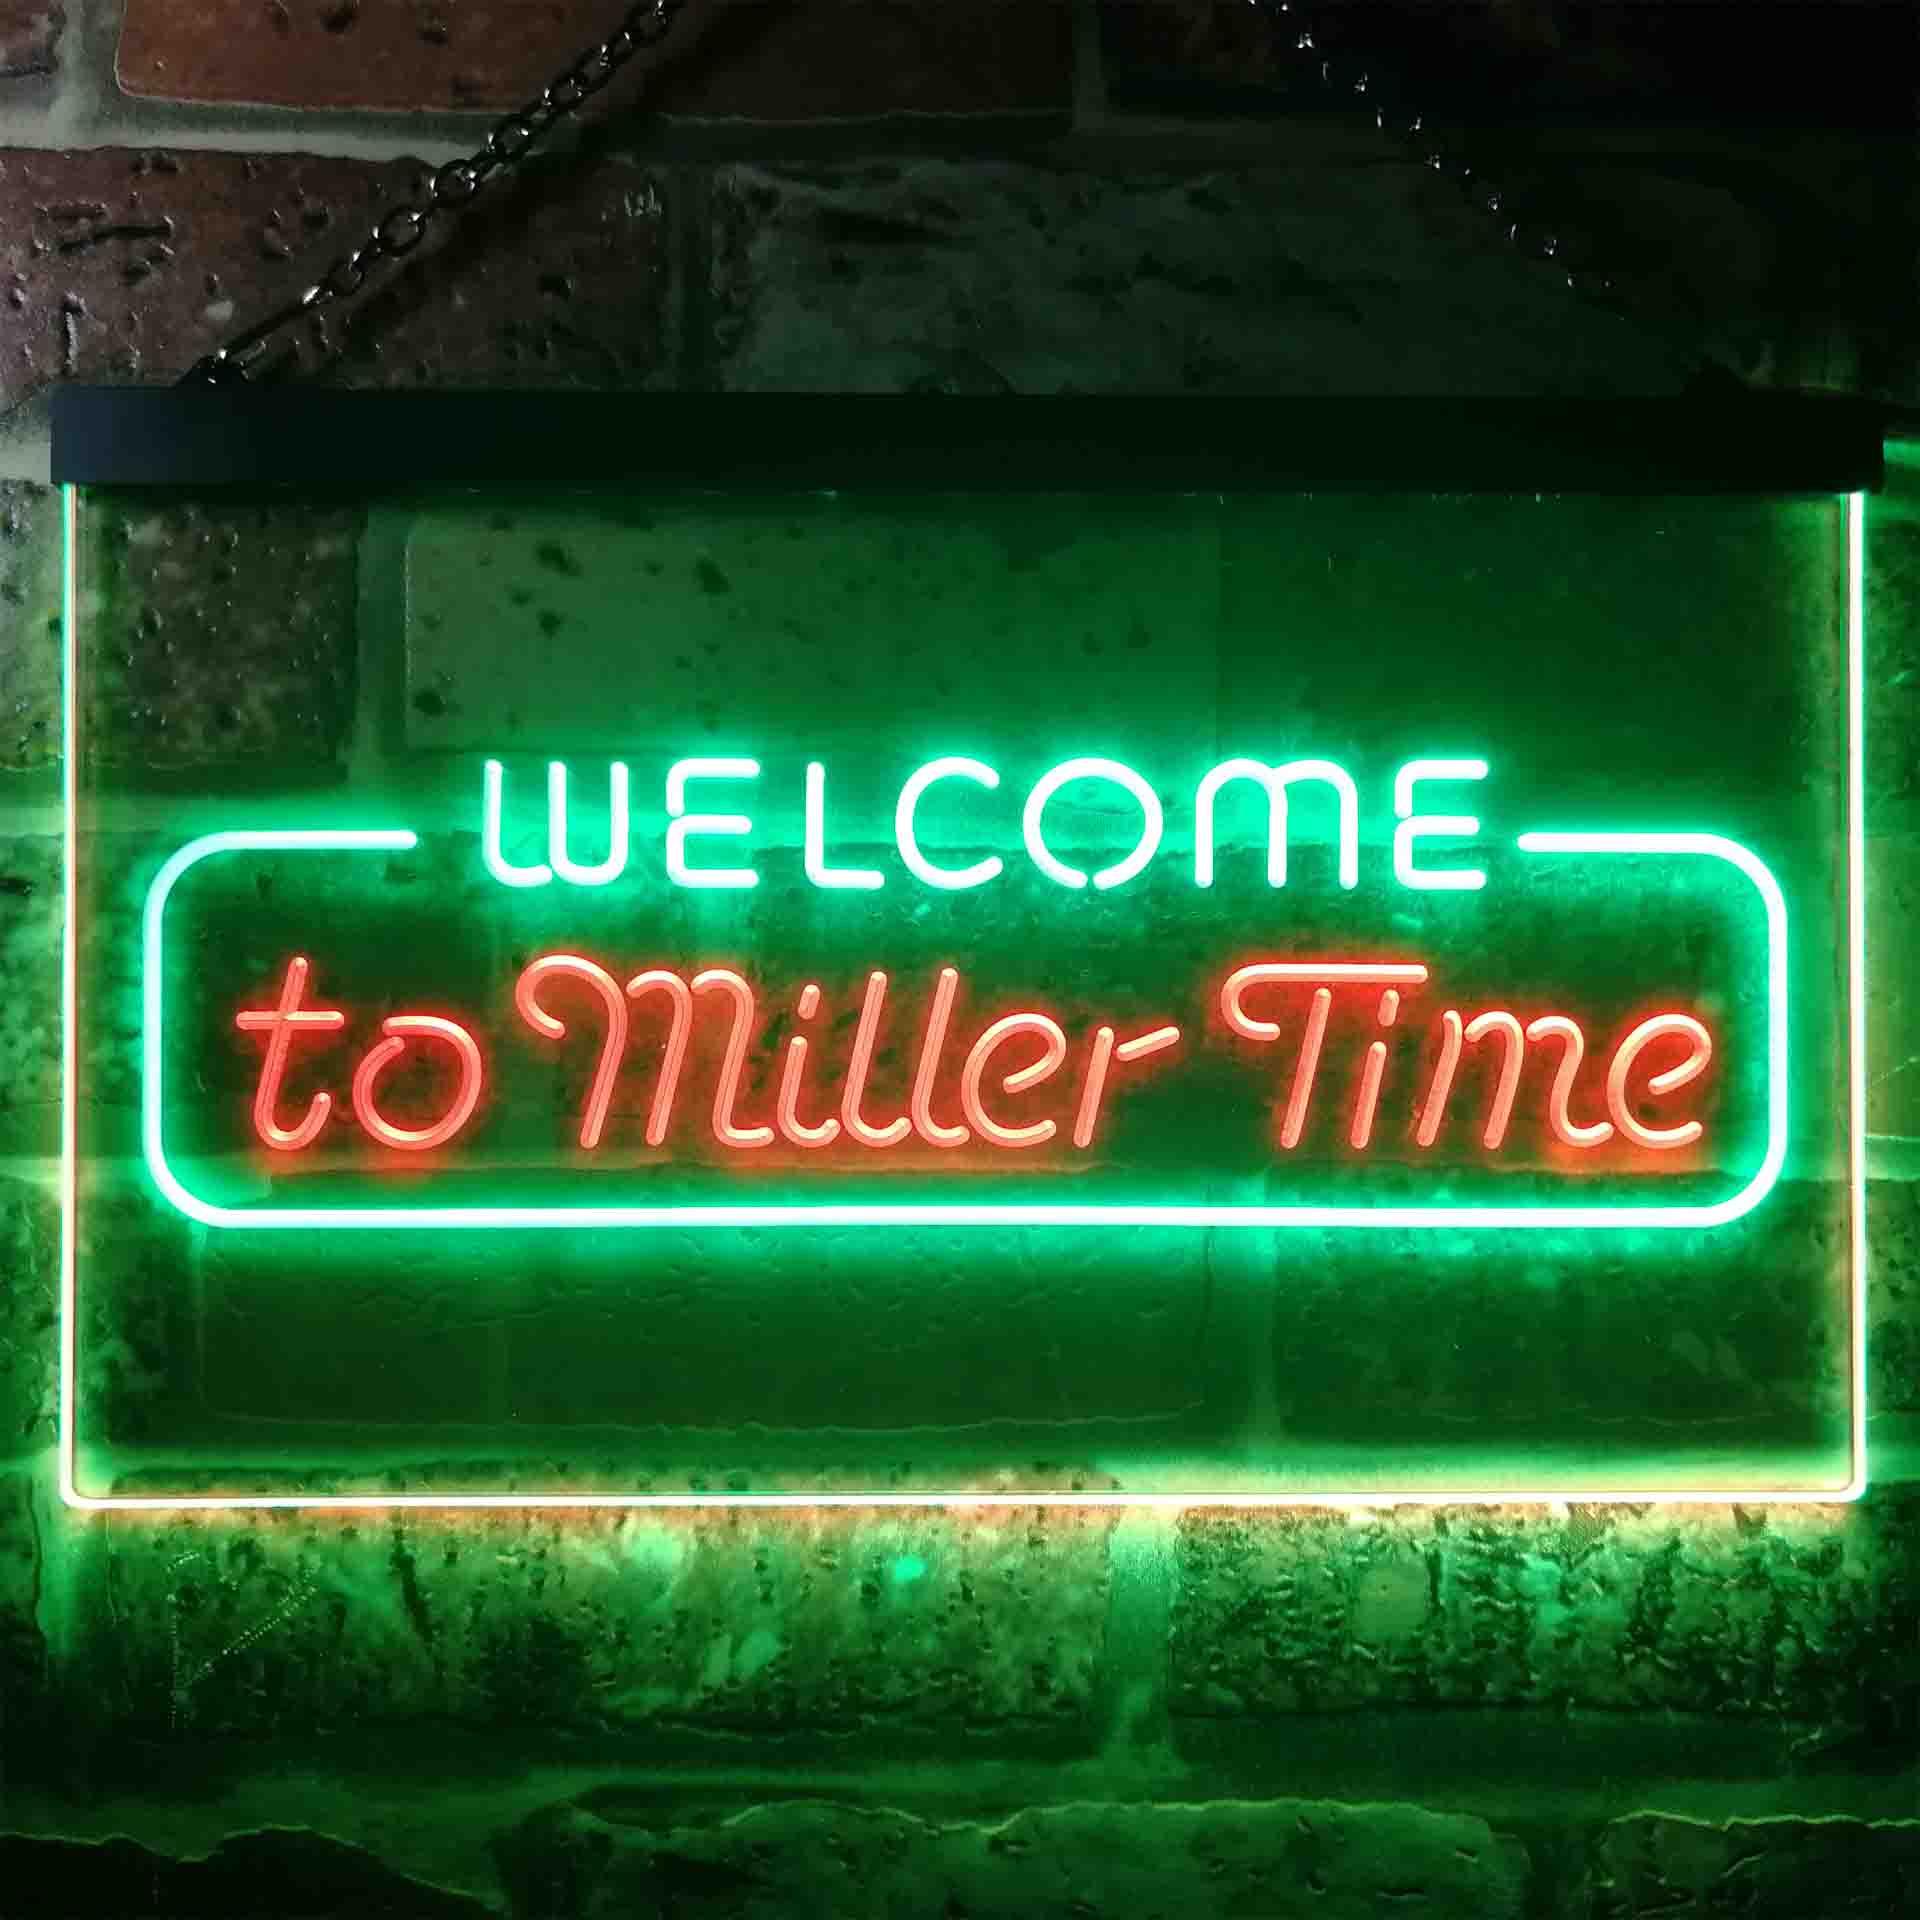 Welcome Miller Time Bar Dual Color LED Neon Sign ProLedSign